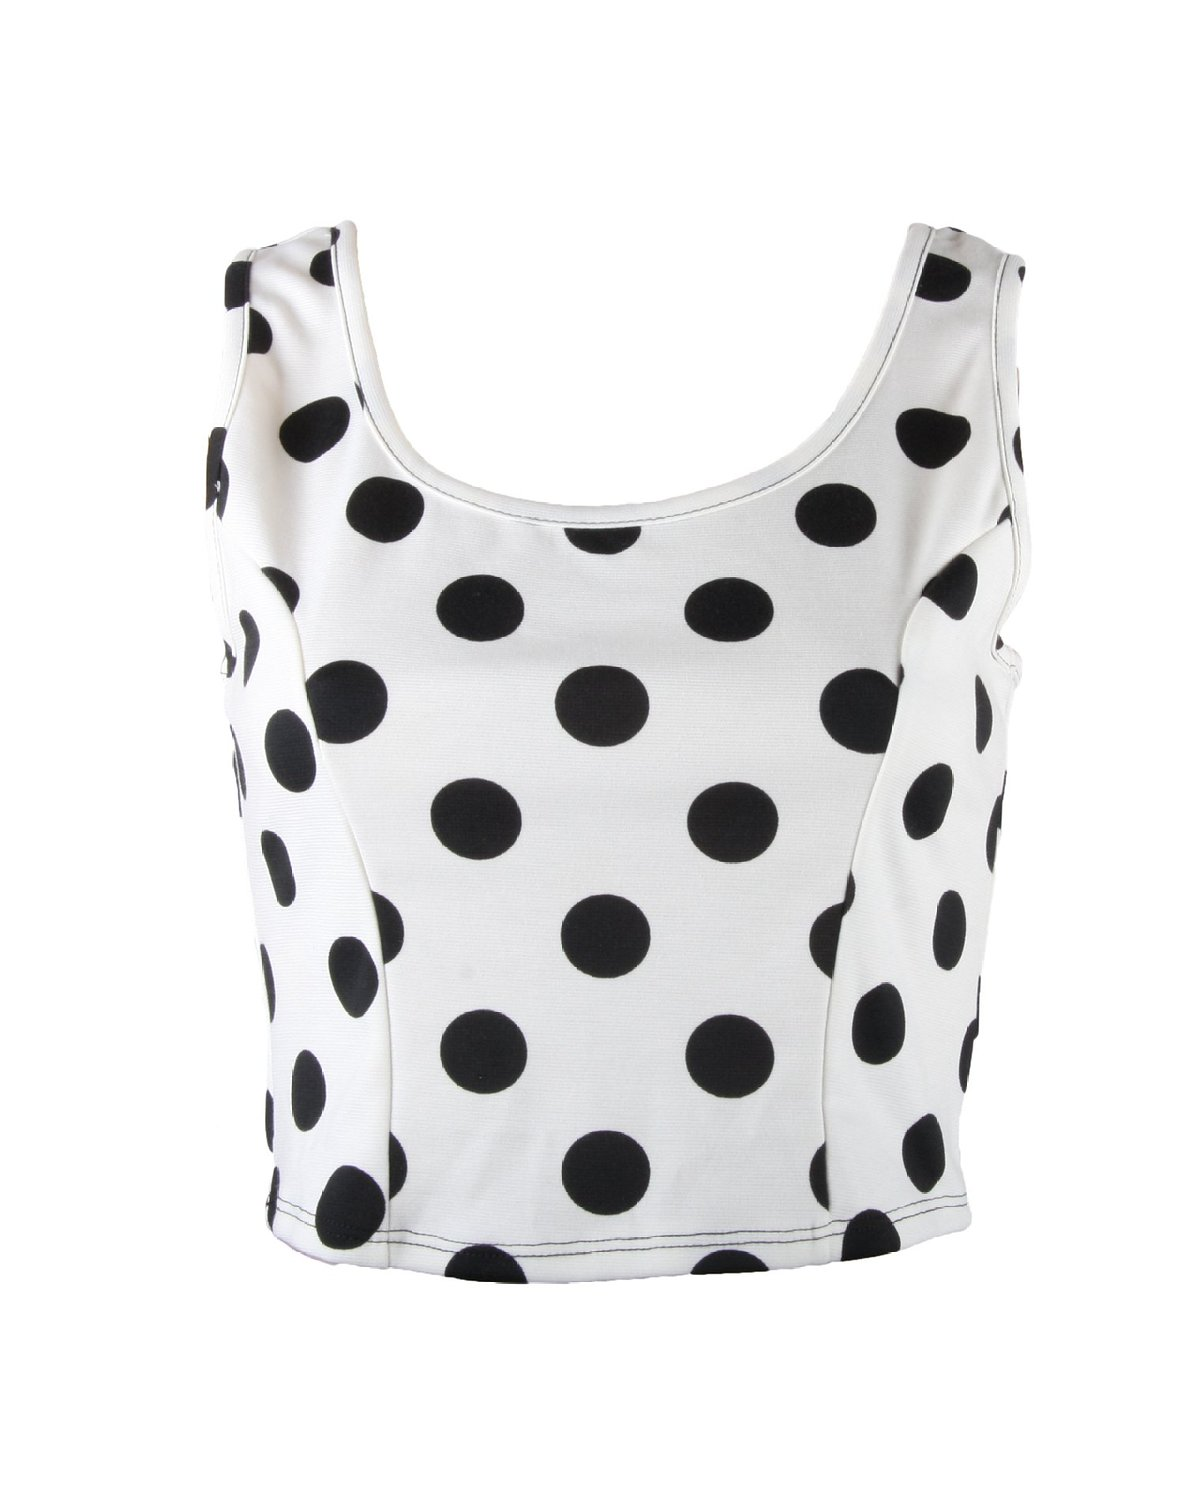 Black polka dots on white tank crop top (large) at amazon women's clothing store: tank top and cami shirts